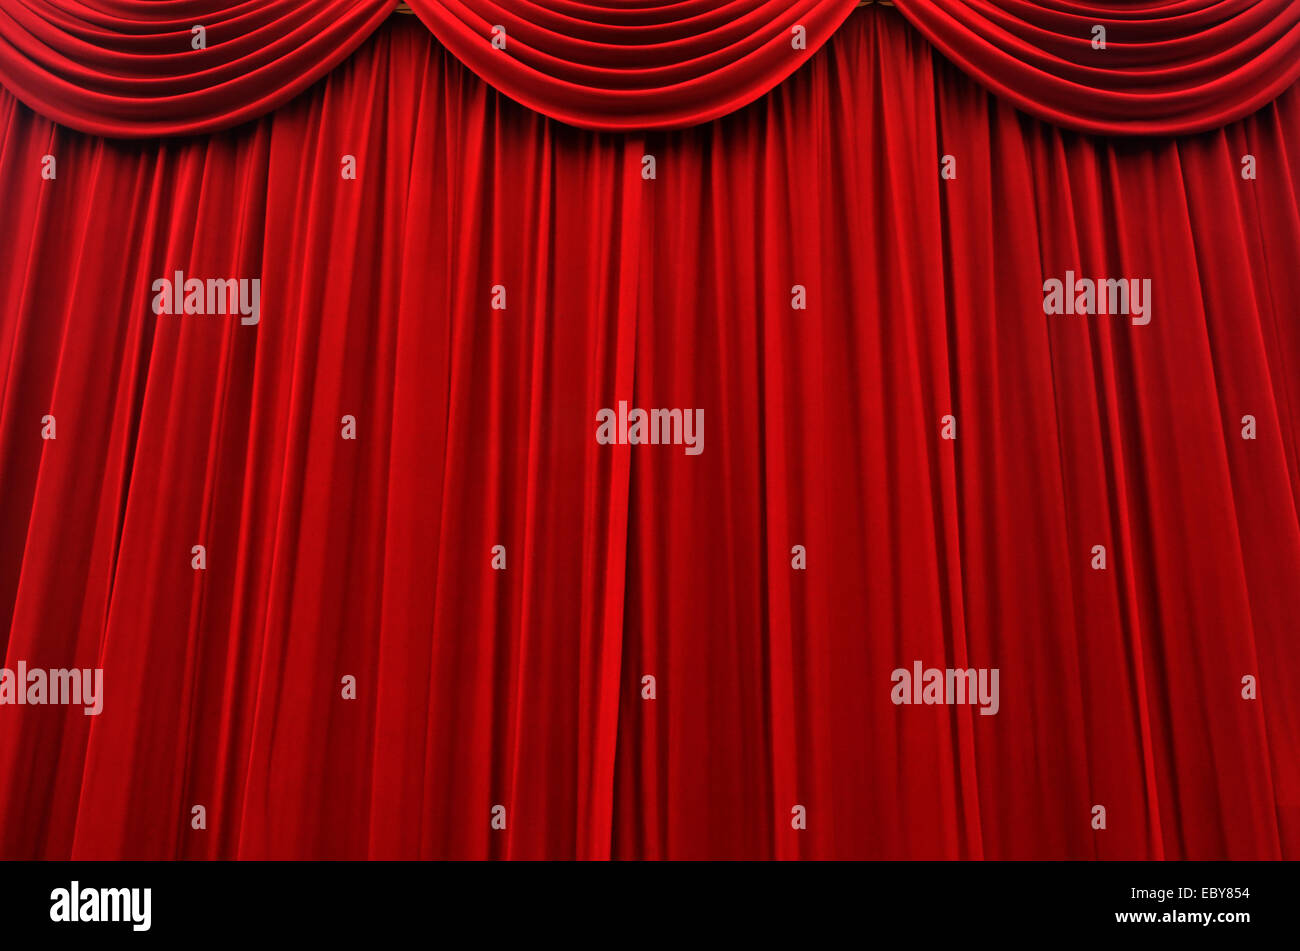 Red cinema and stage curtain background texture. - Stock Image